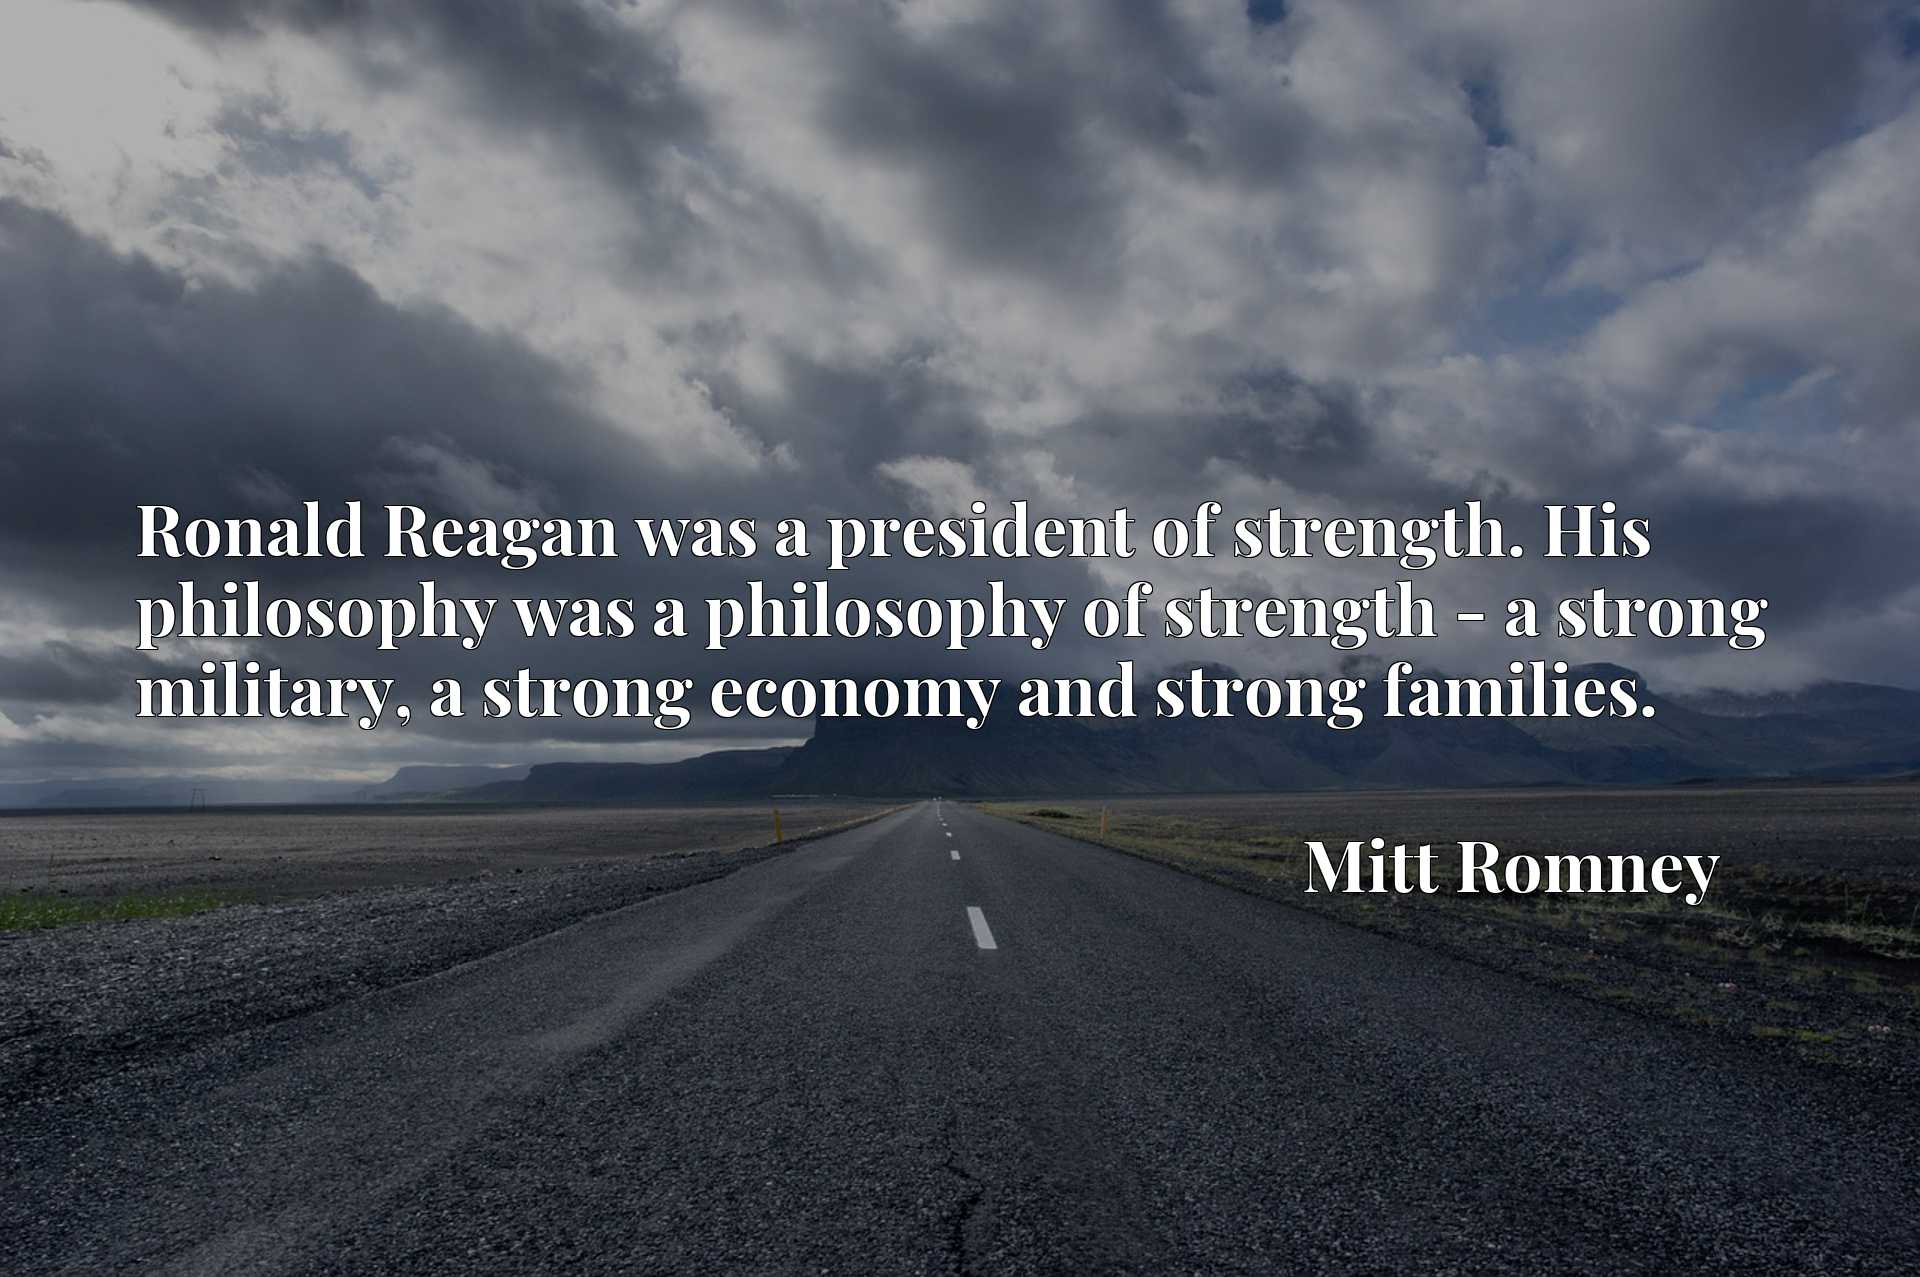 Ronald Reagan was a president of strength. His philosophy was a philosophy of strength - a strong military, a strong economy and strong families.